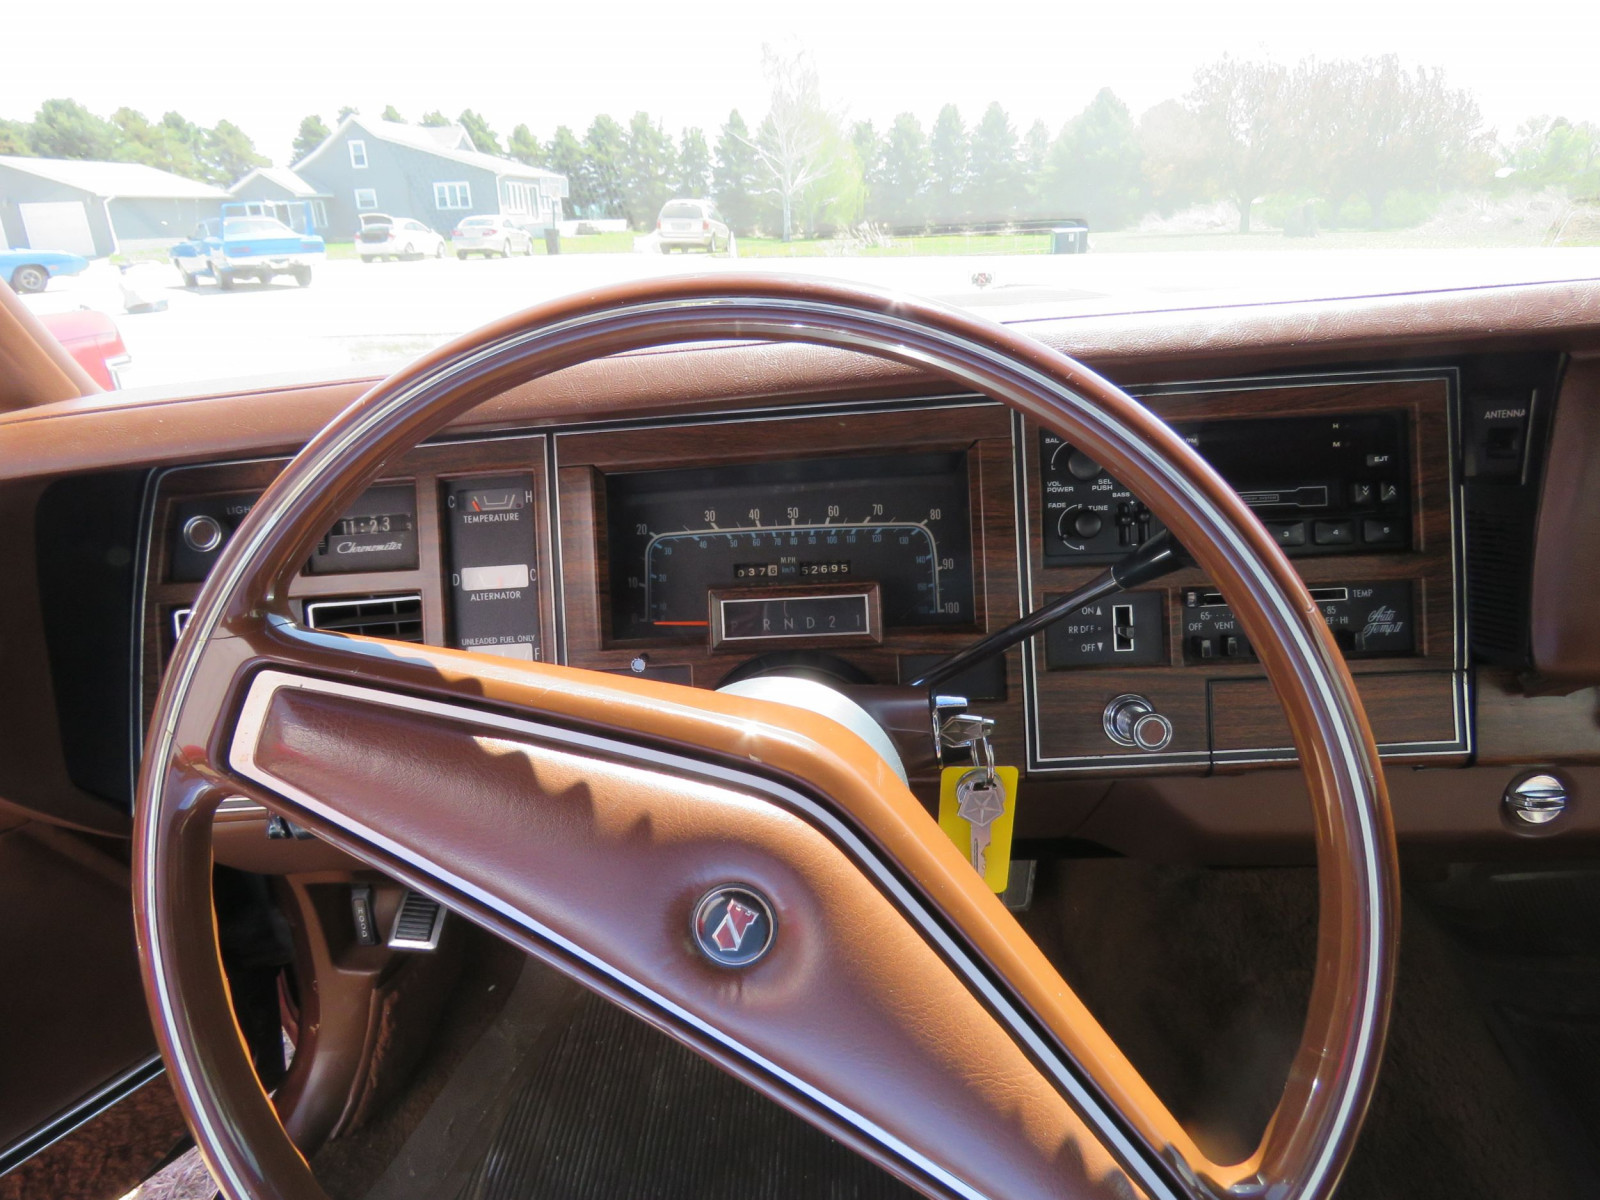 1977 Chrysler New Yorker Brougham with ST. Regis package - Image 16